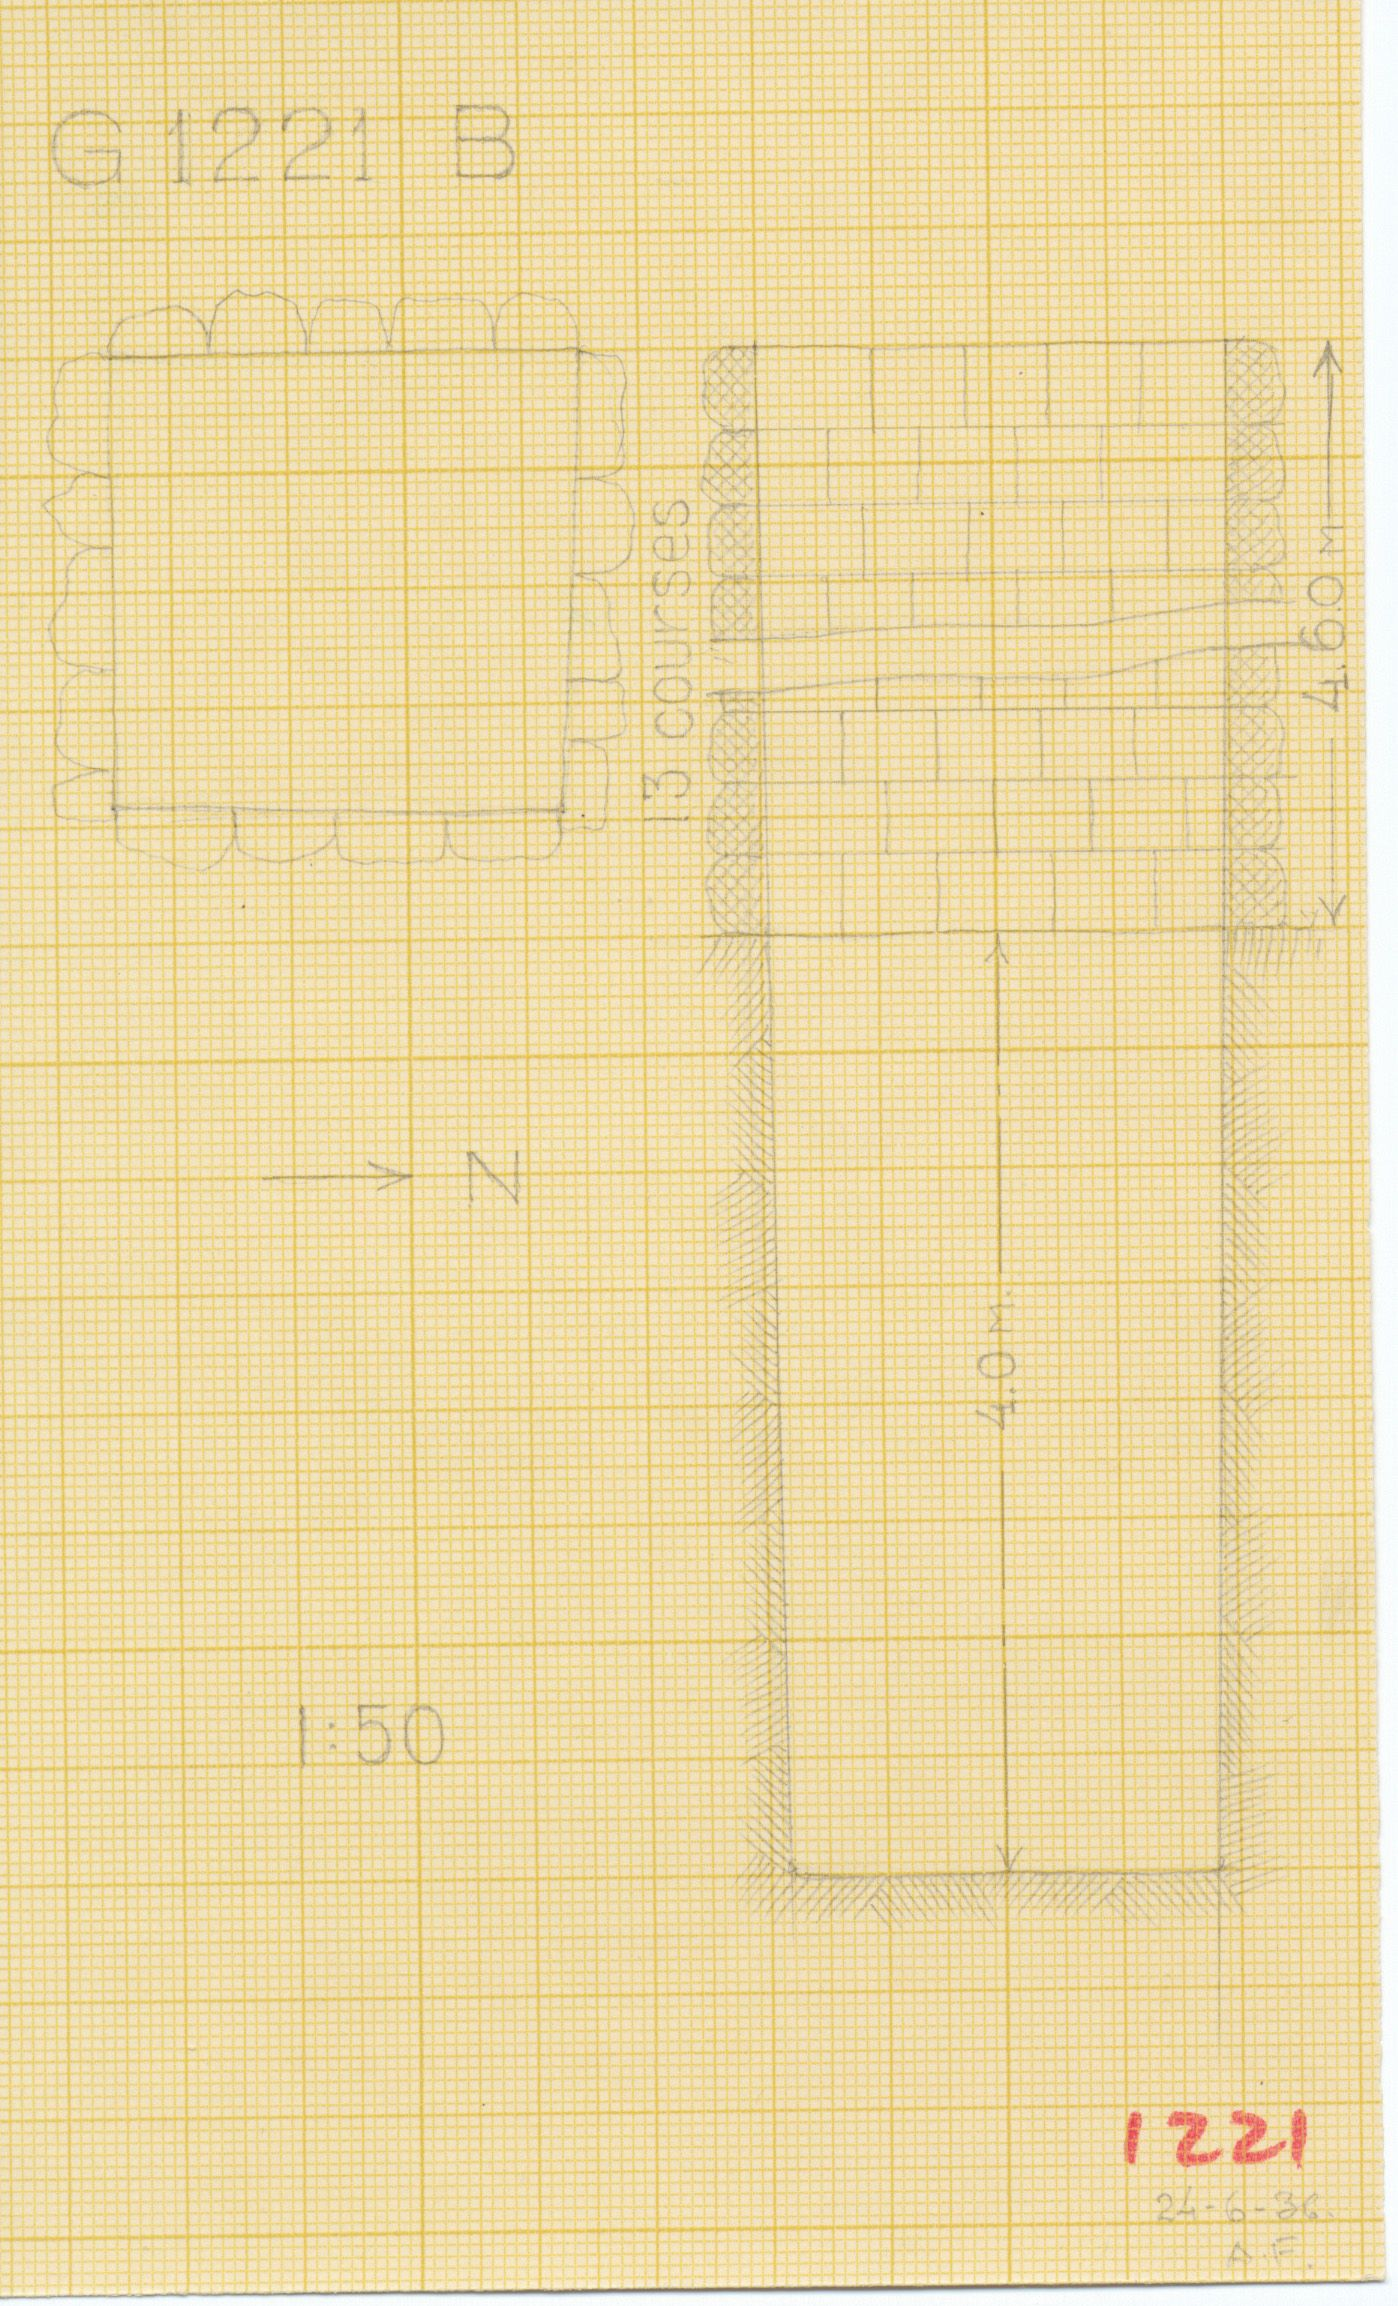 Maps and plans: G 1221, Shaft B